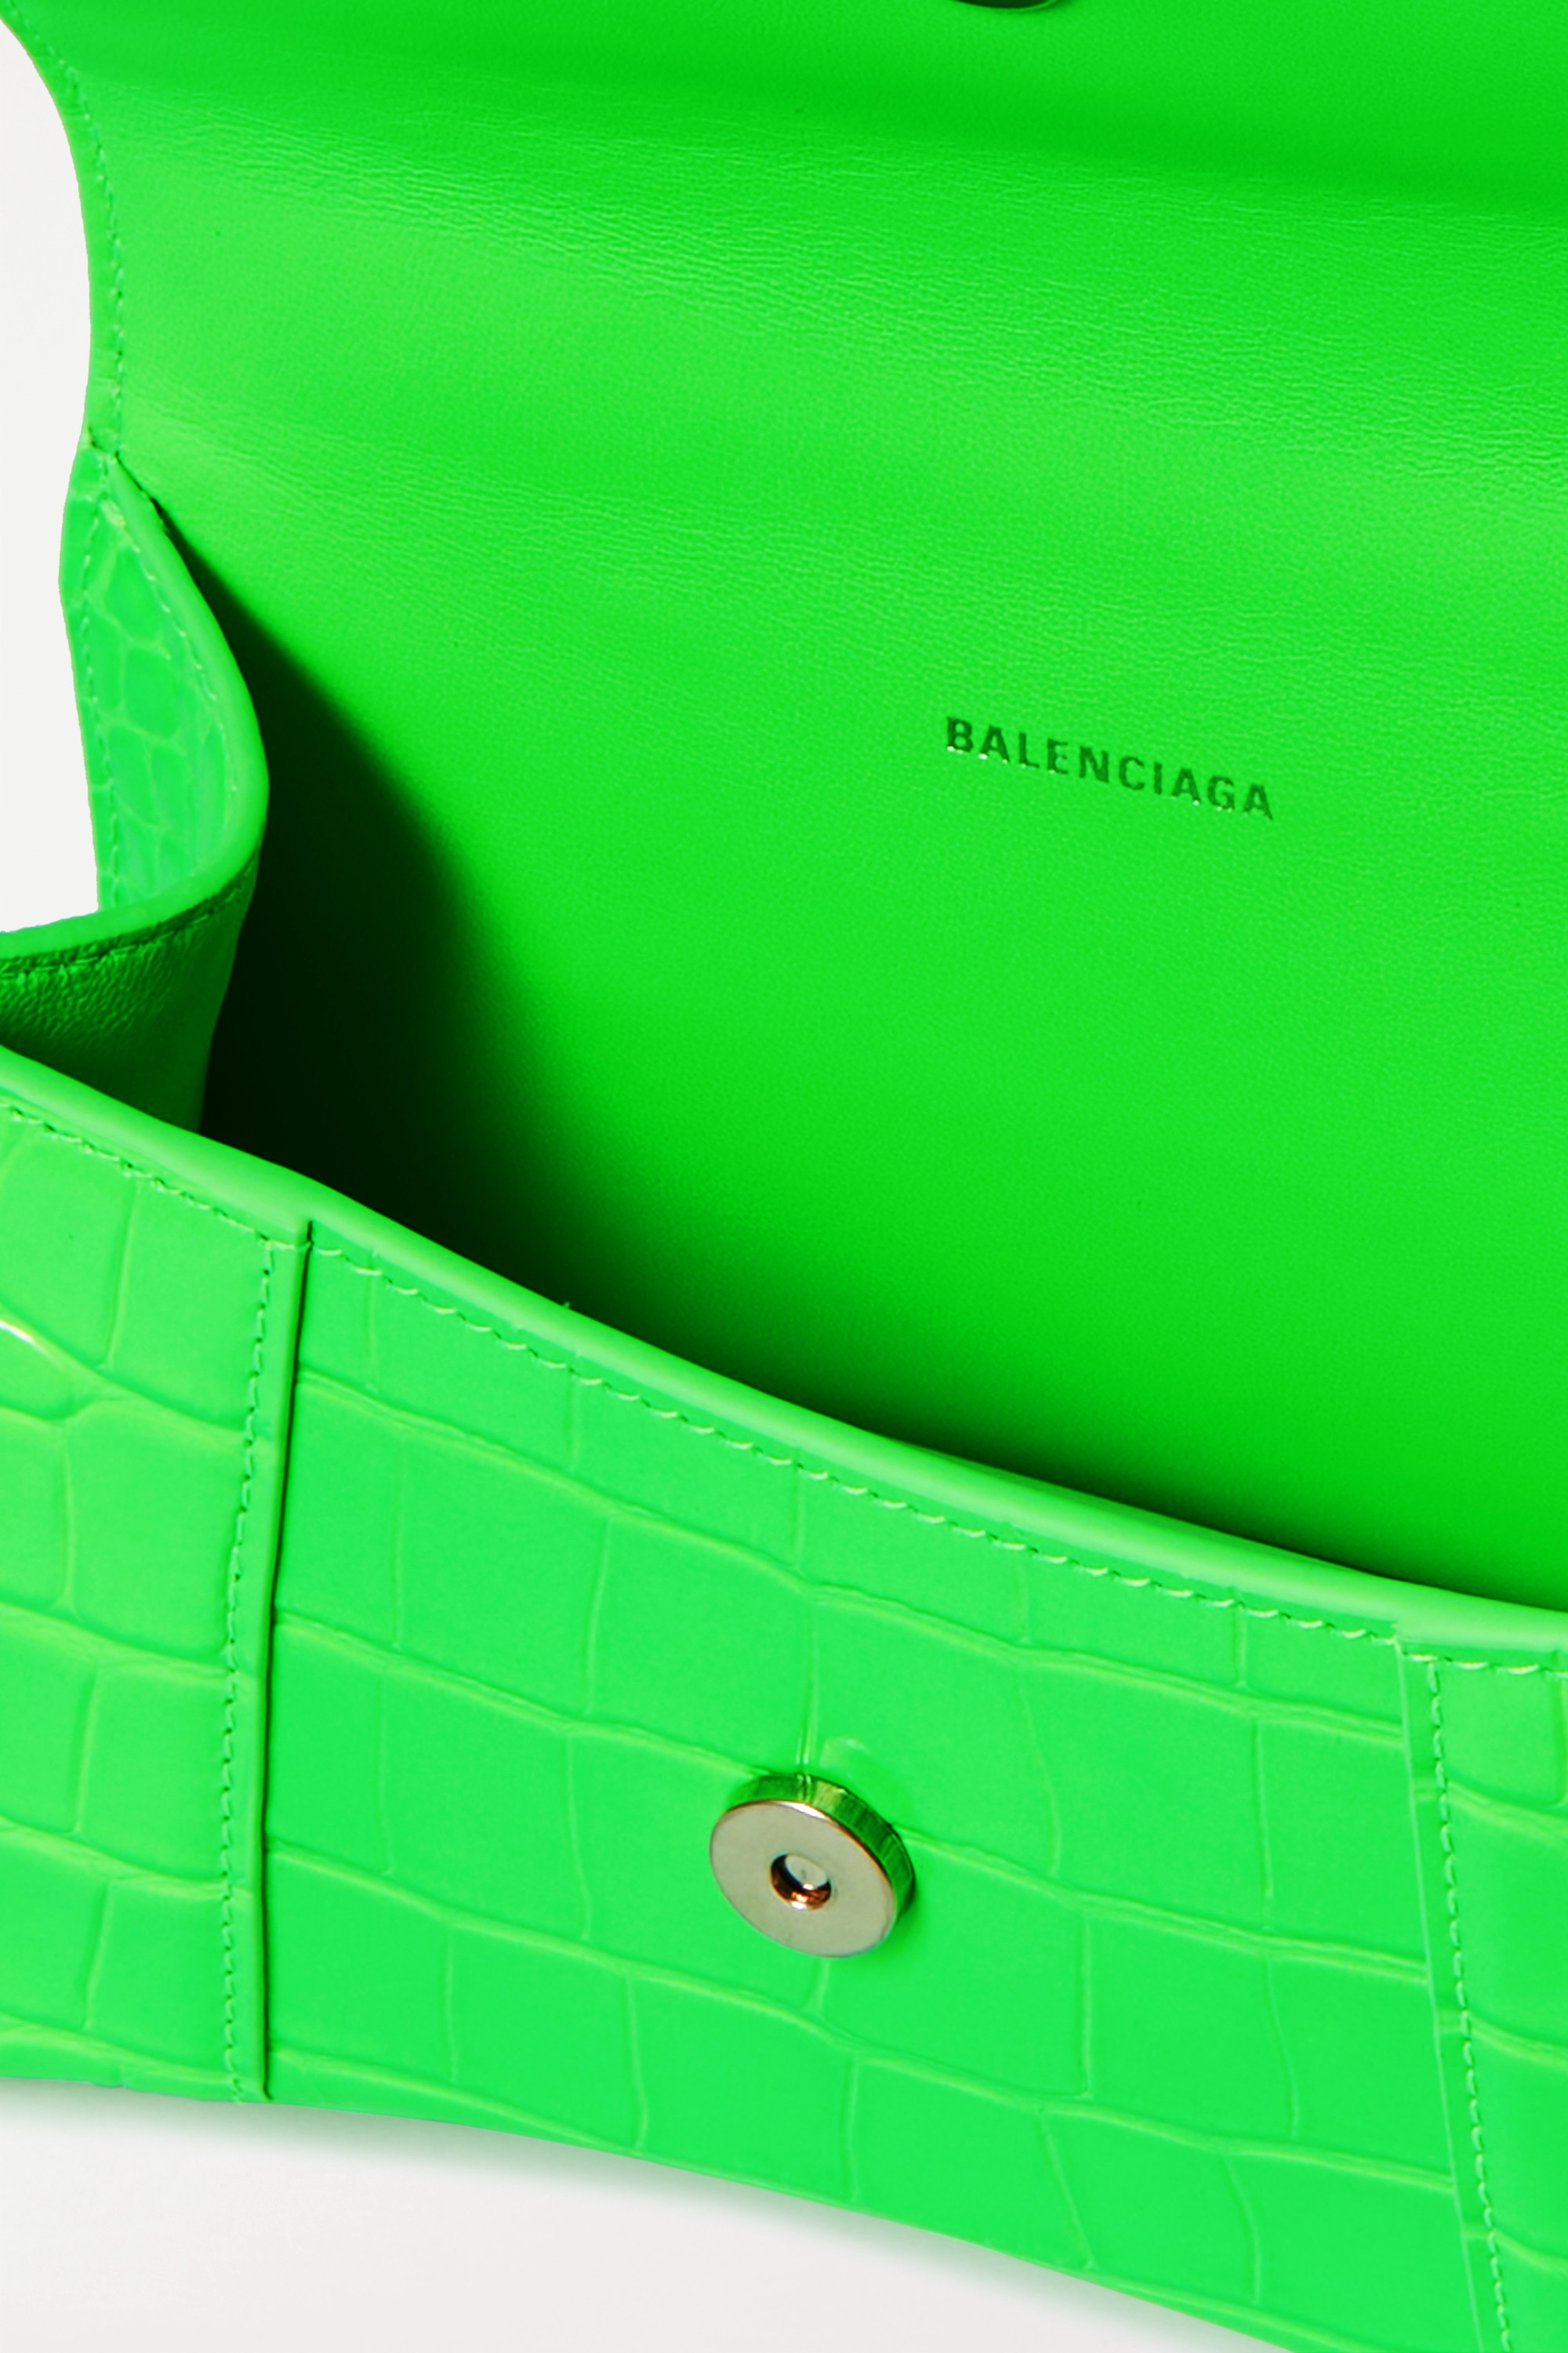 Balenciaga Hourglass XS croc-effect leather tote